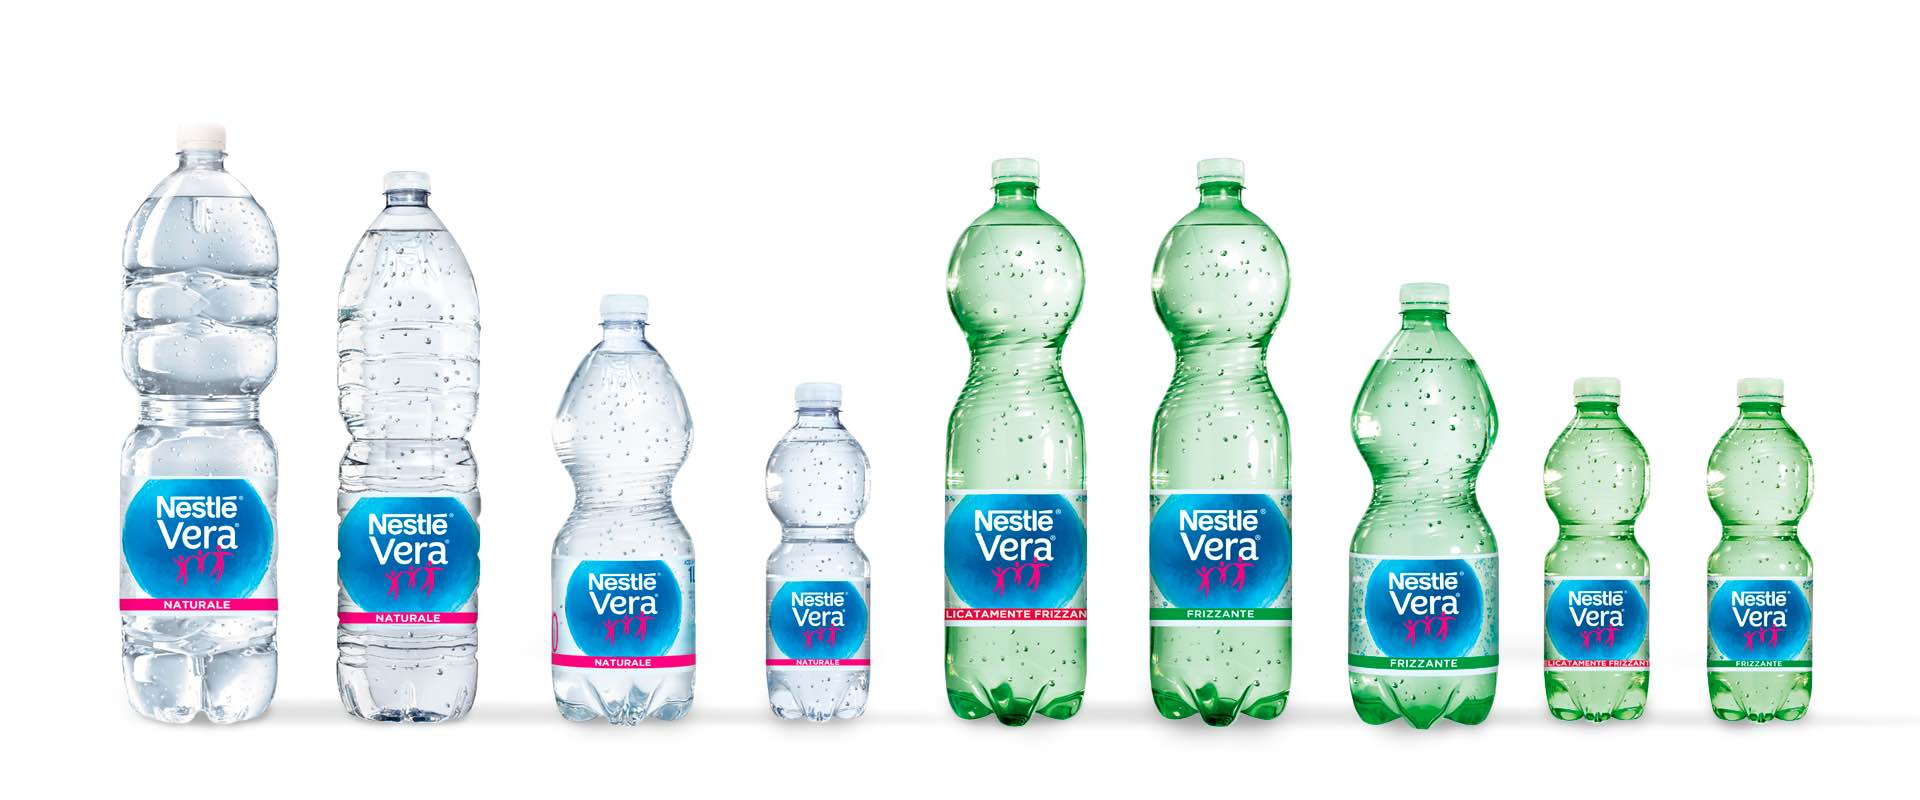 Nestlé Vera natural and sparkling water range relaunch